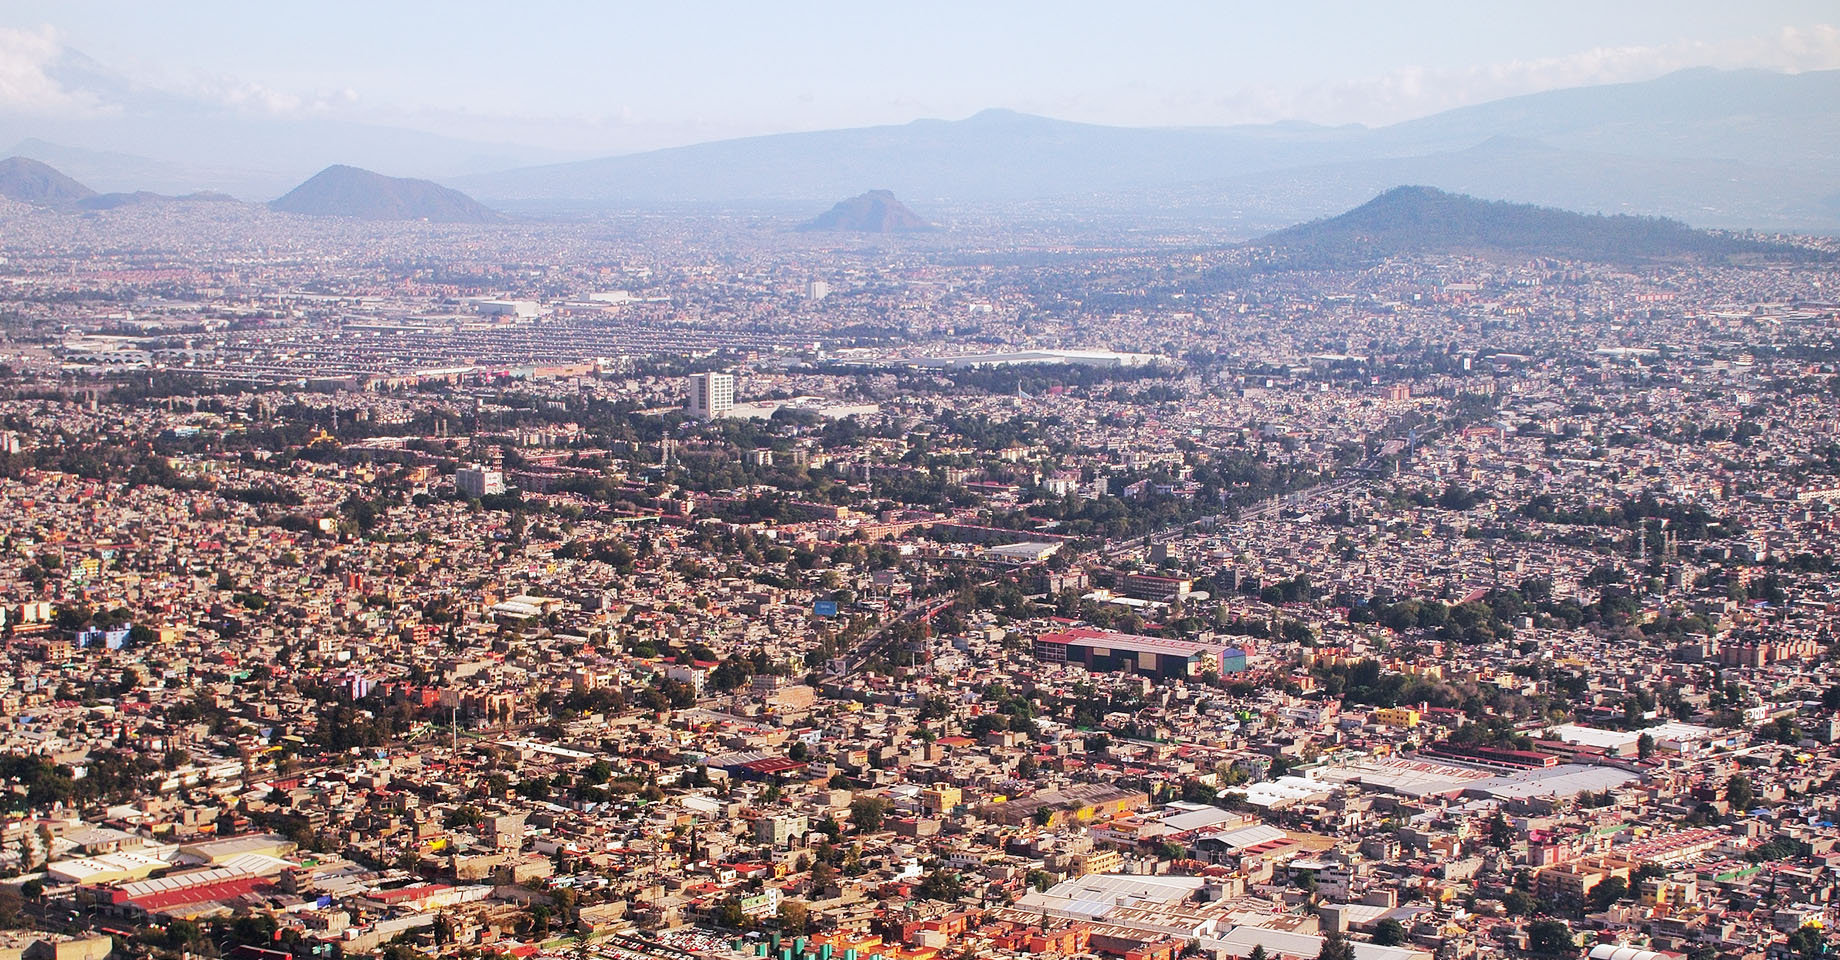 Greater Mexico City Aerial